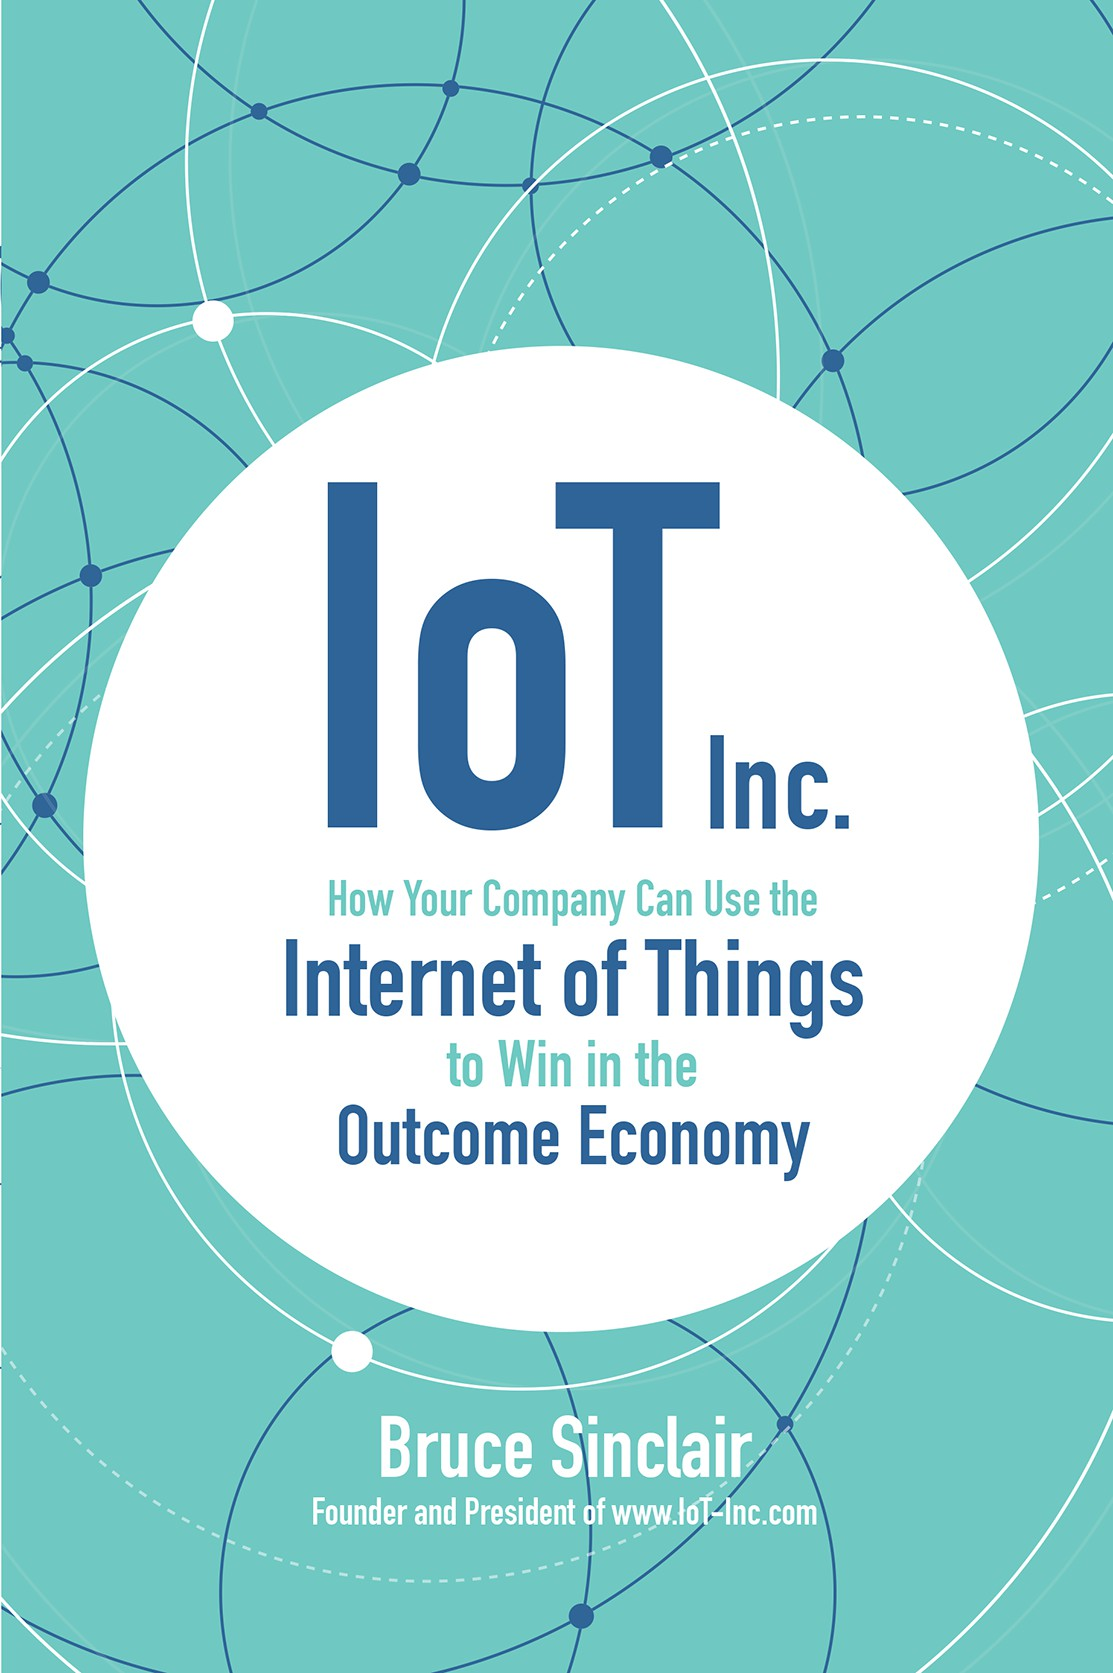 Download Ebook IoT Inc: How Your Company Can Use the Internet of Things to Win in the Outcome Economy by Bruce Sinclair Pdf